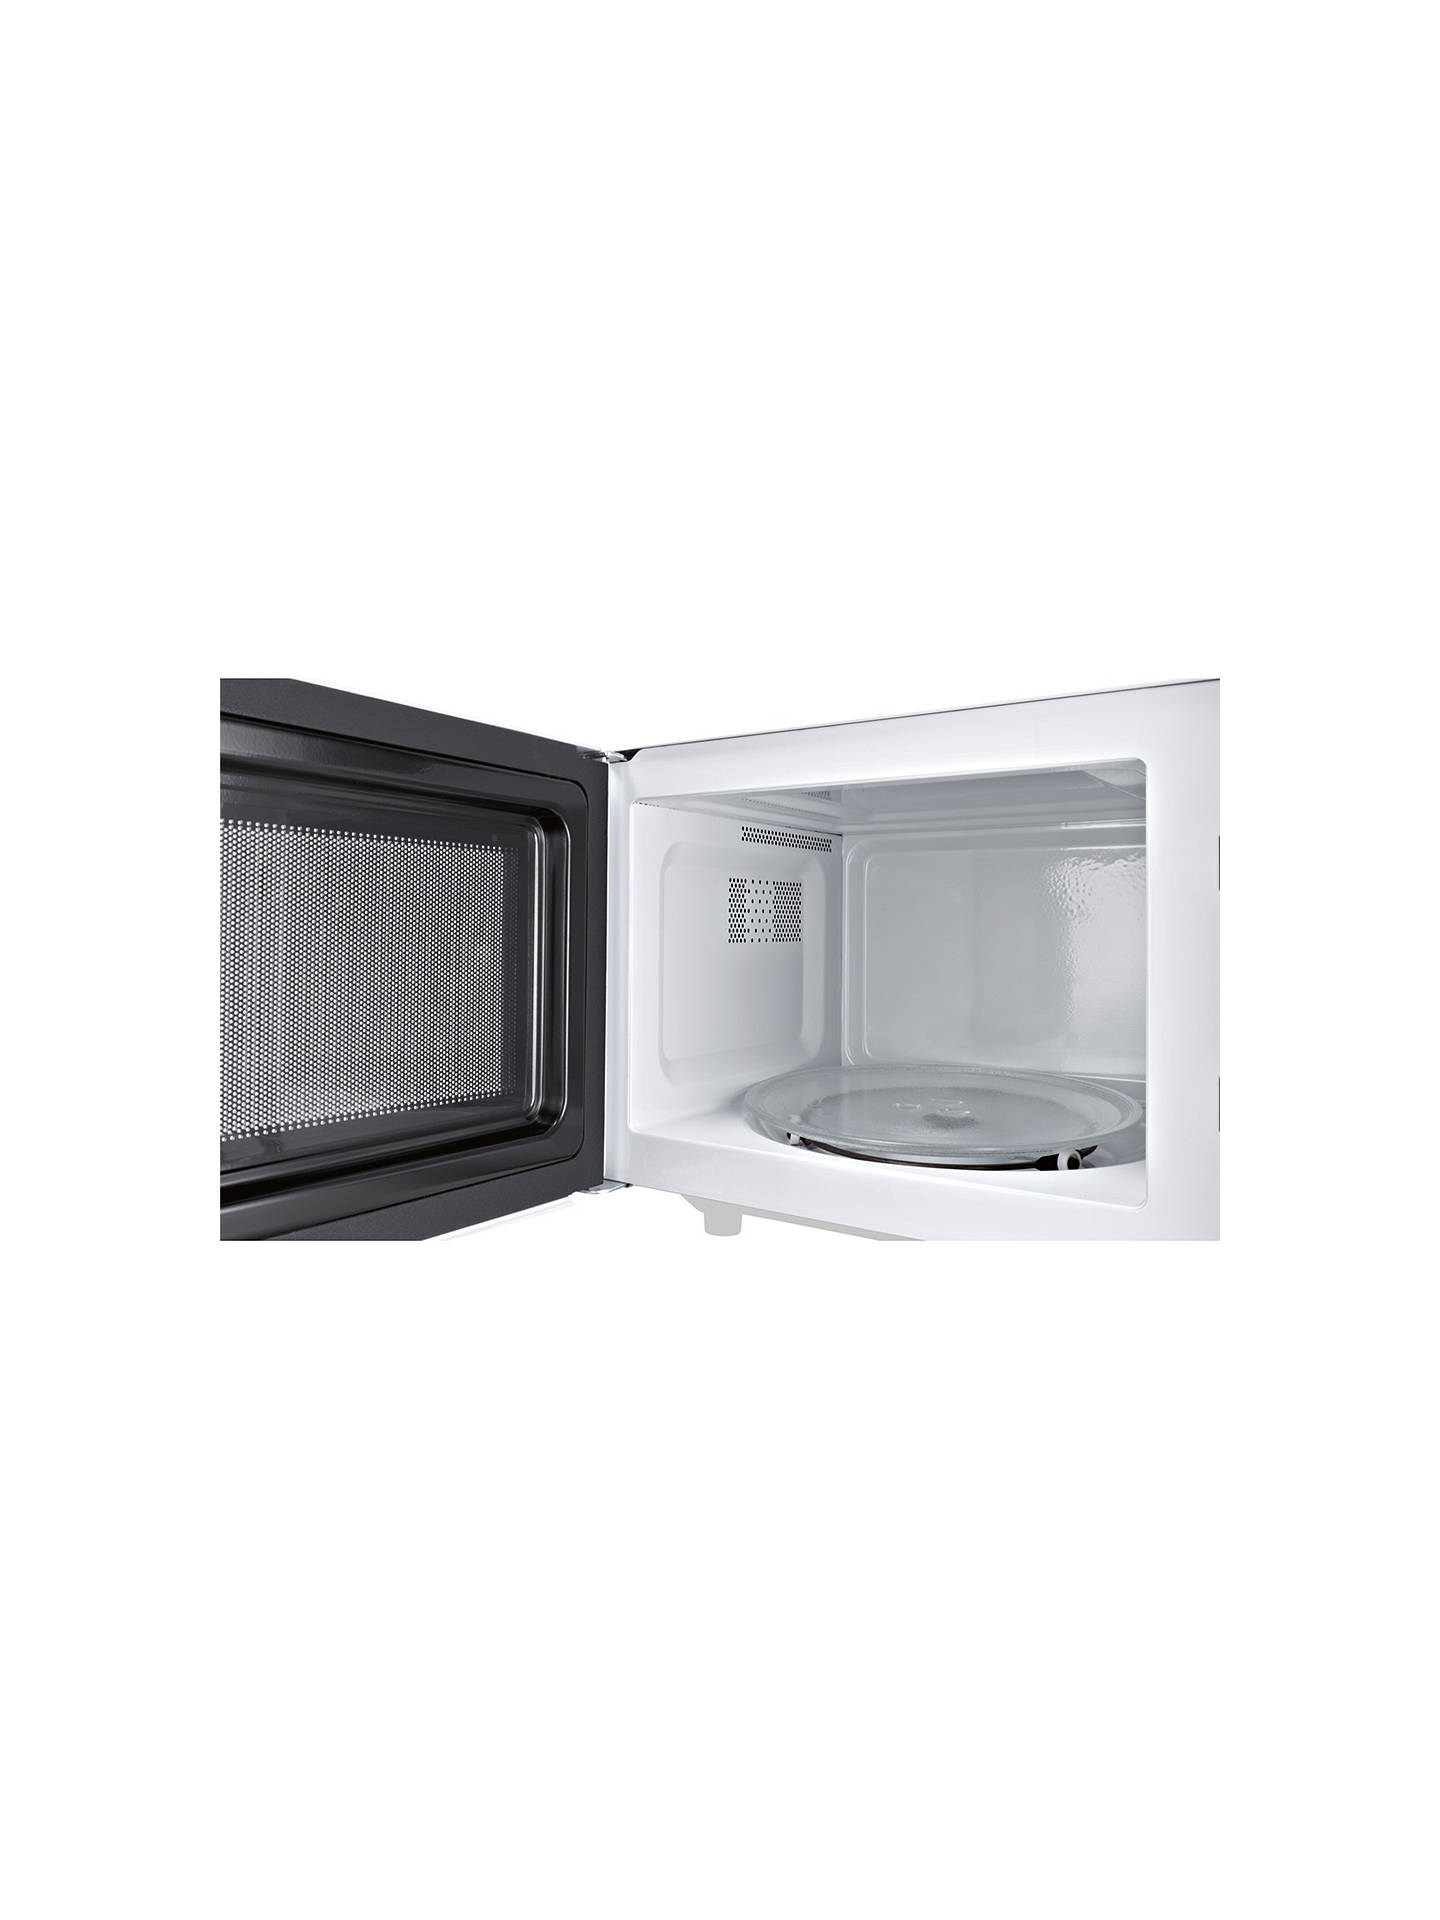 BuyBosch HMT72G450B Microwave with Grill, Stainless Steel Online at johnlewis.com